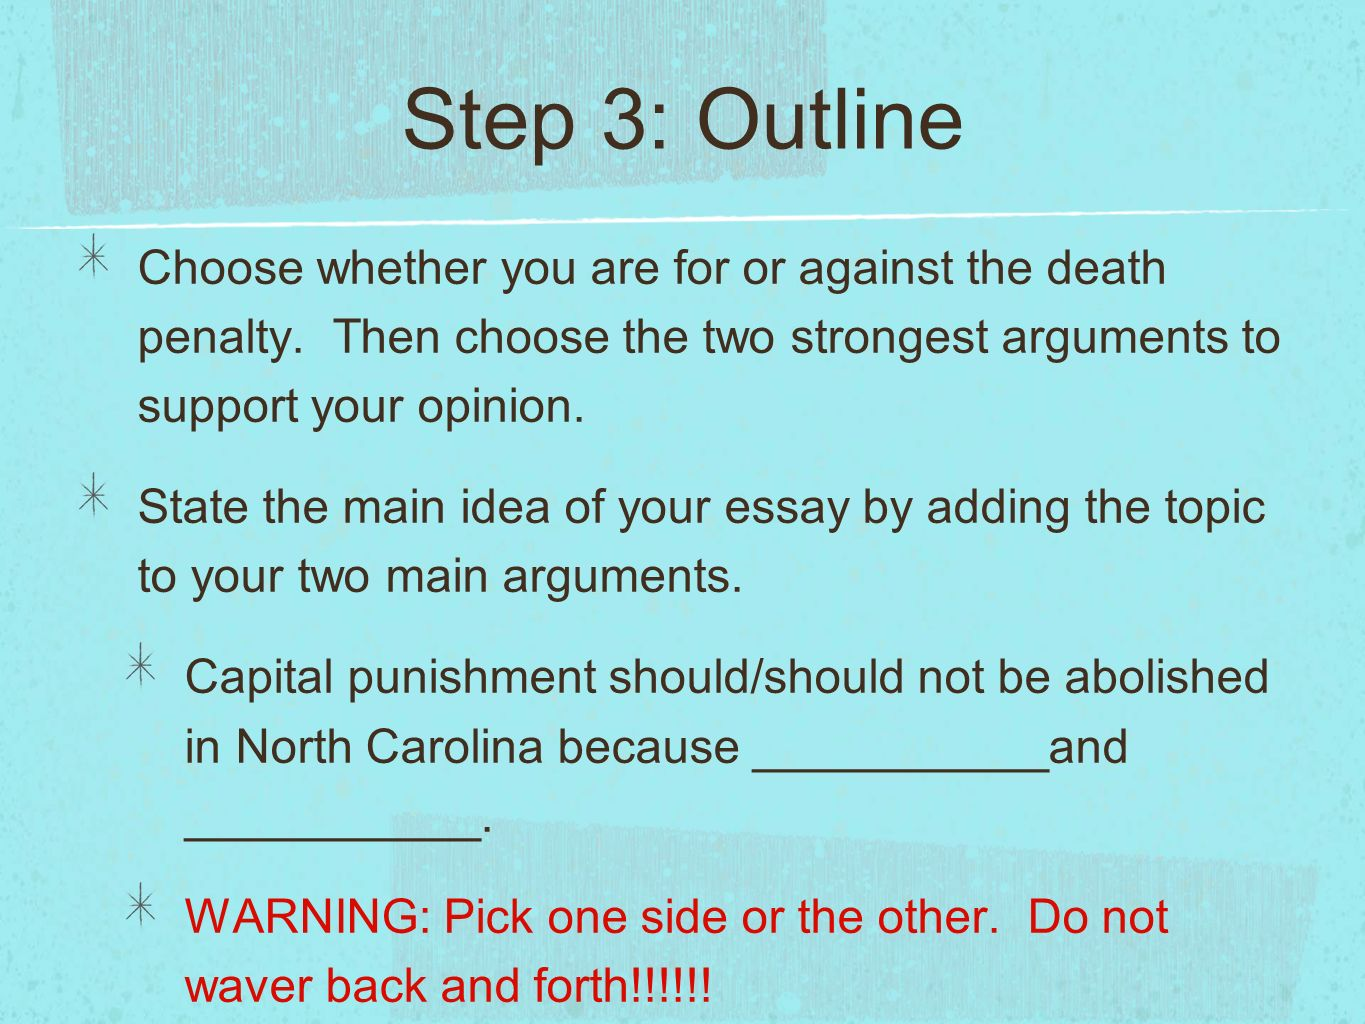 021 Arguments For Death Penalty Essay Against Kill The Persuasive On Con Sl Why Should Abolished Paragraph In Philippines About Anti Pro Breathtaking Advantages And Disadvantages Of Cons Full